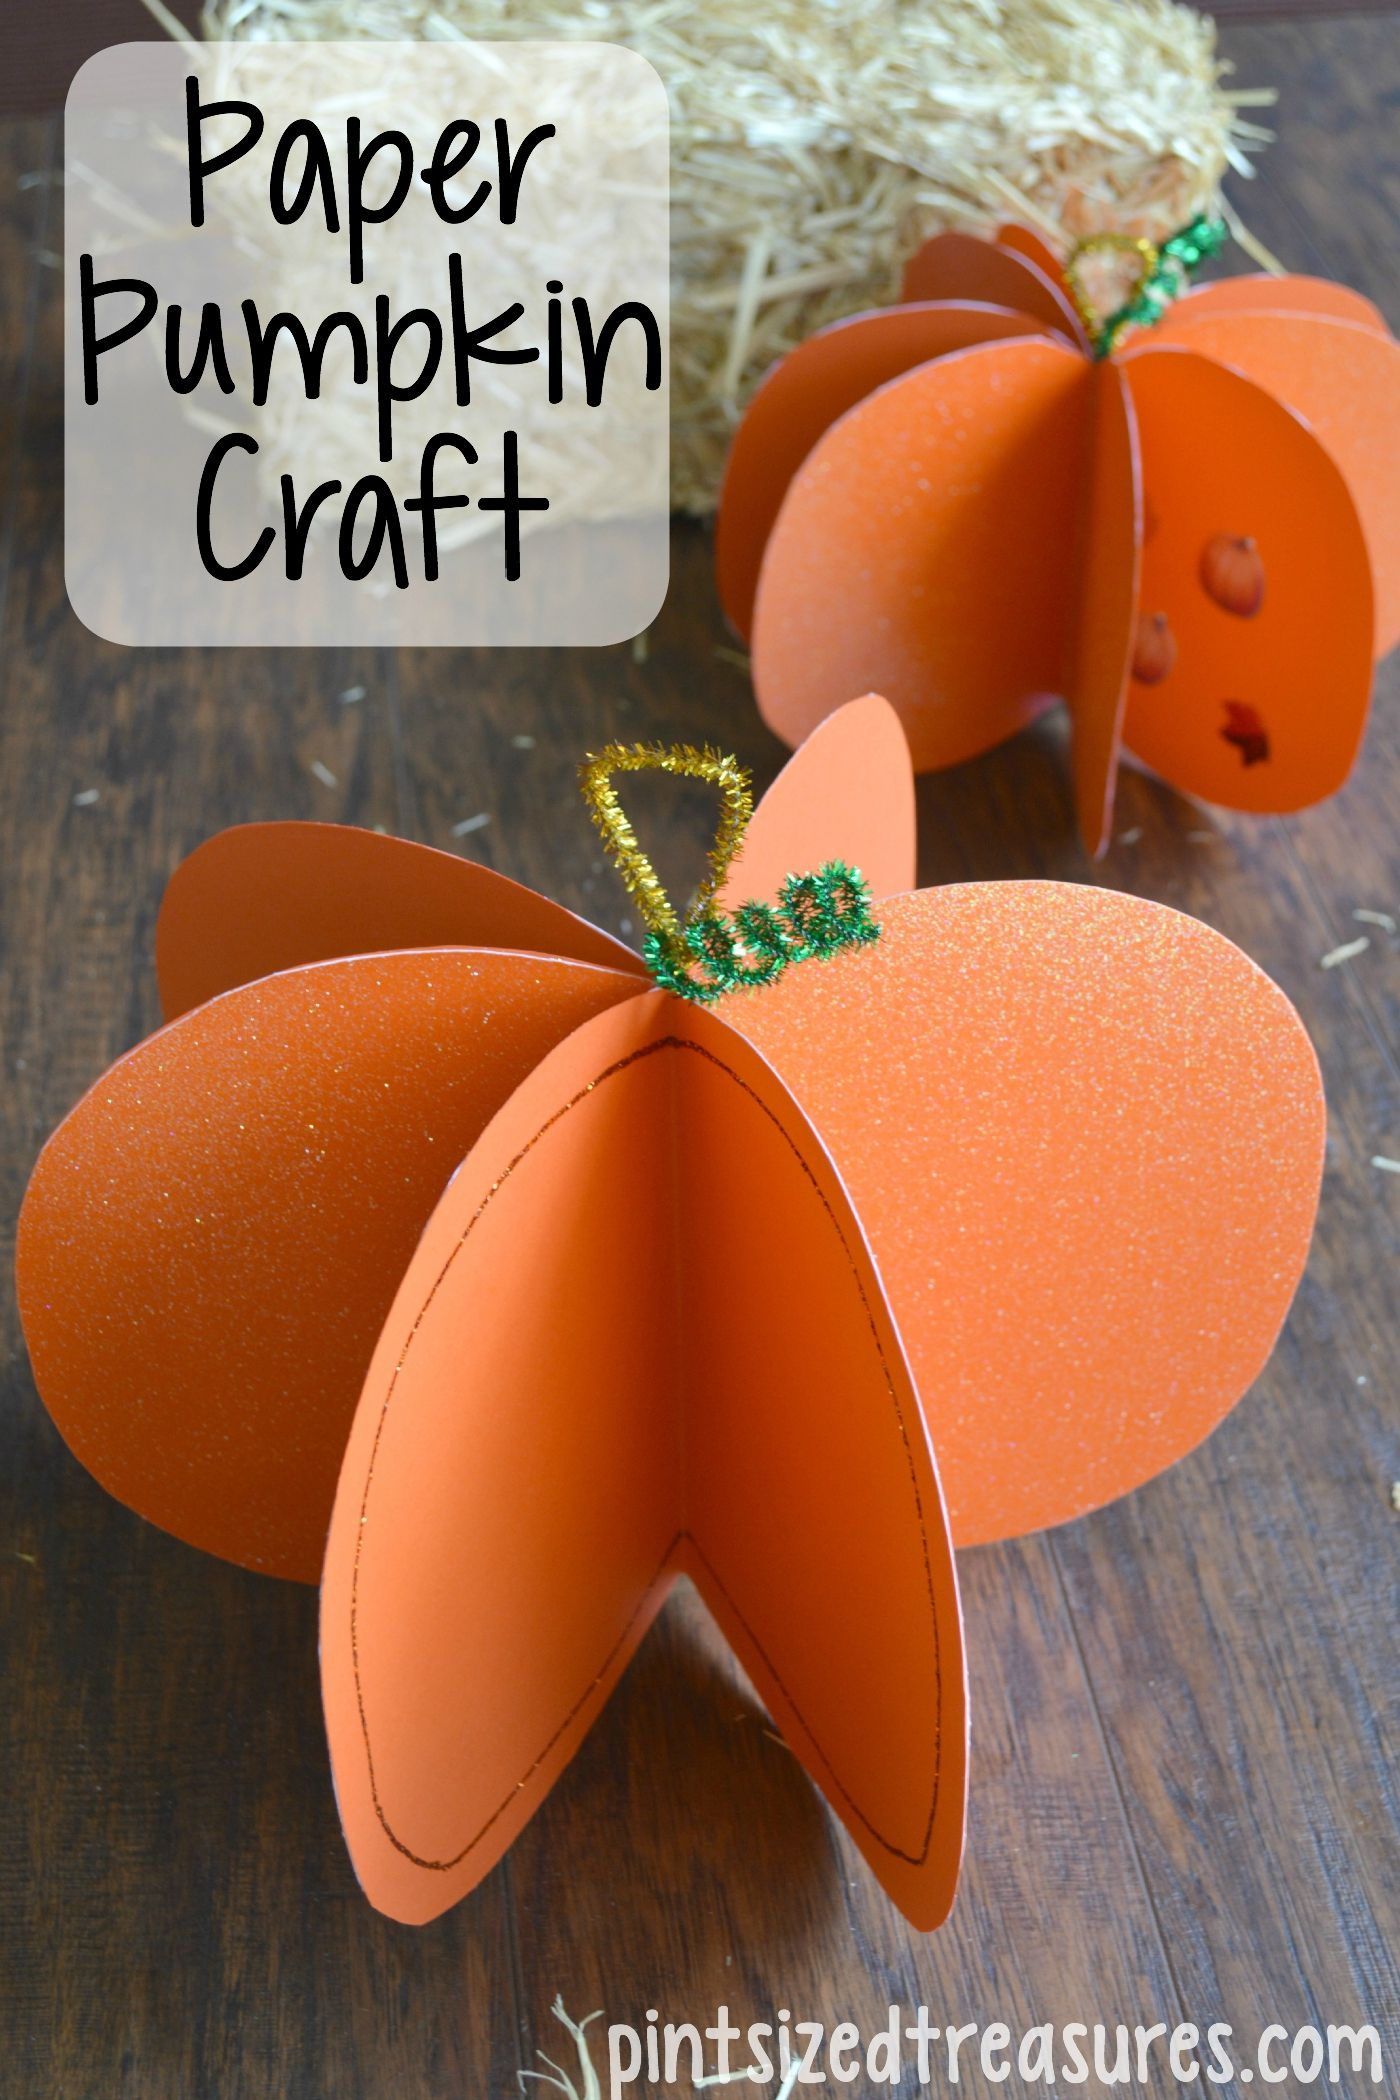 This is an image of Playful Pumpkin Arts and Craft